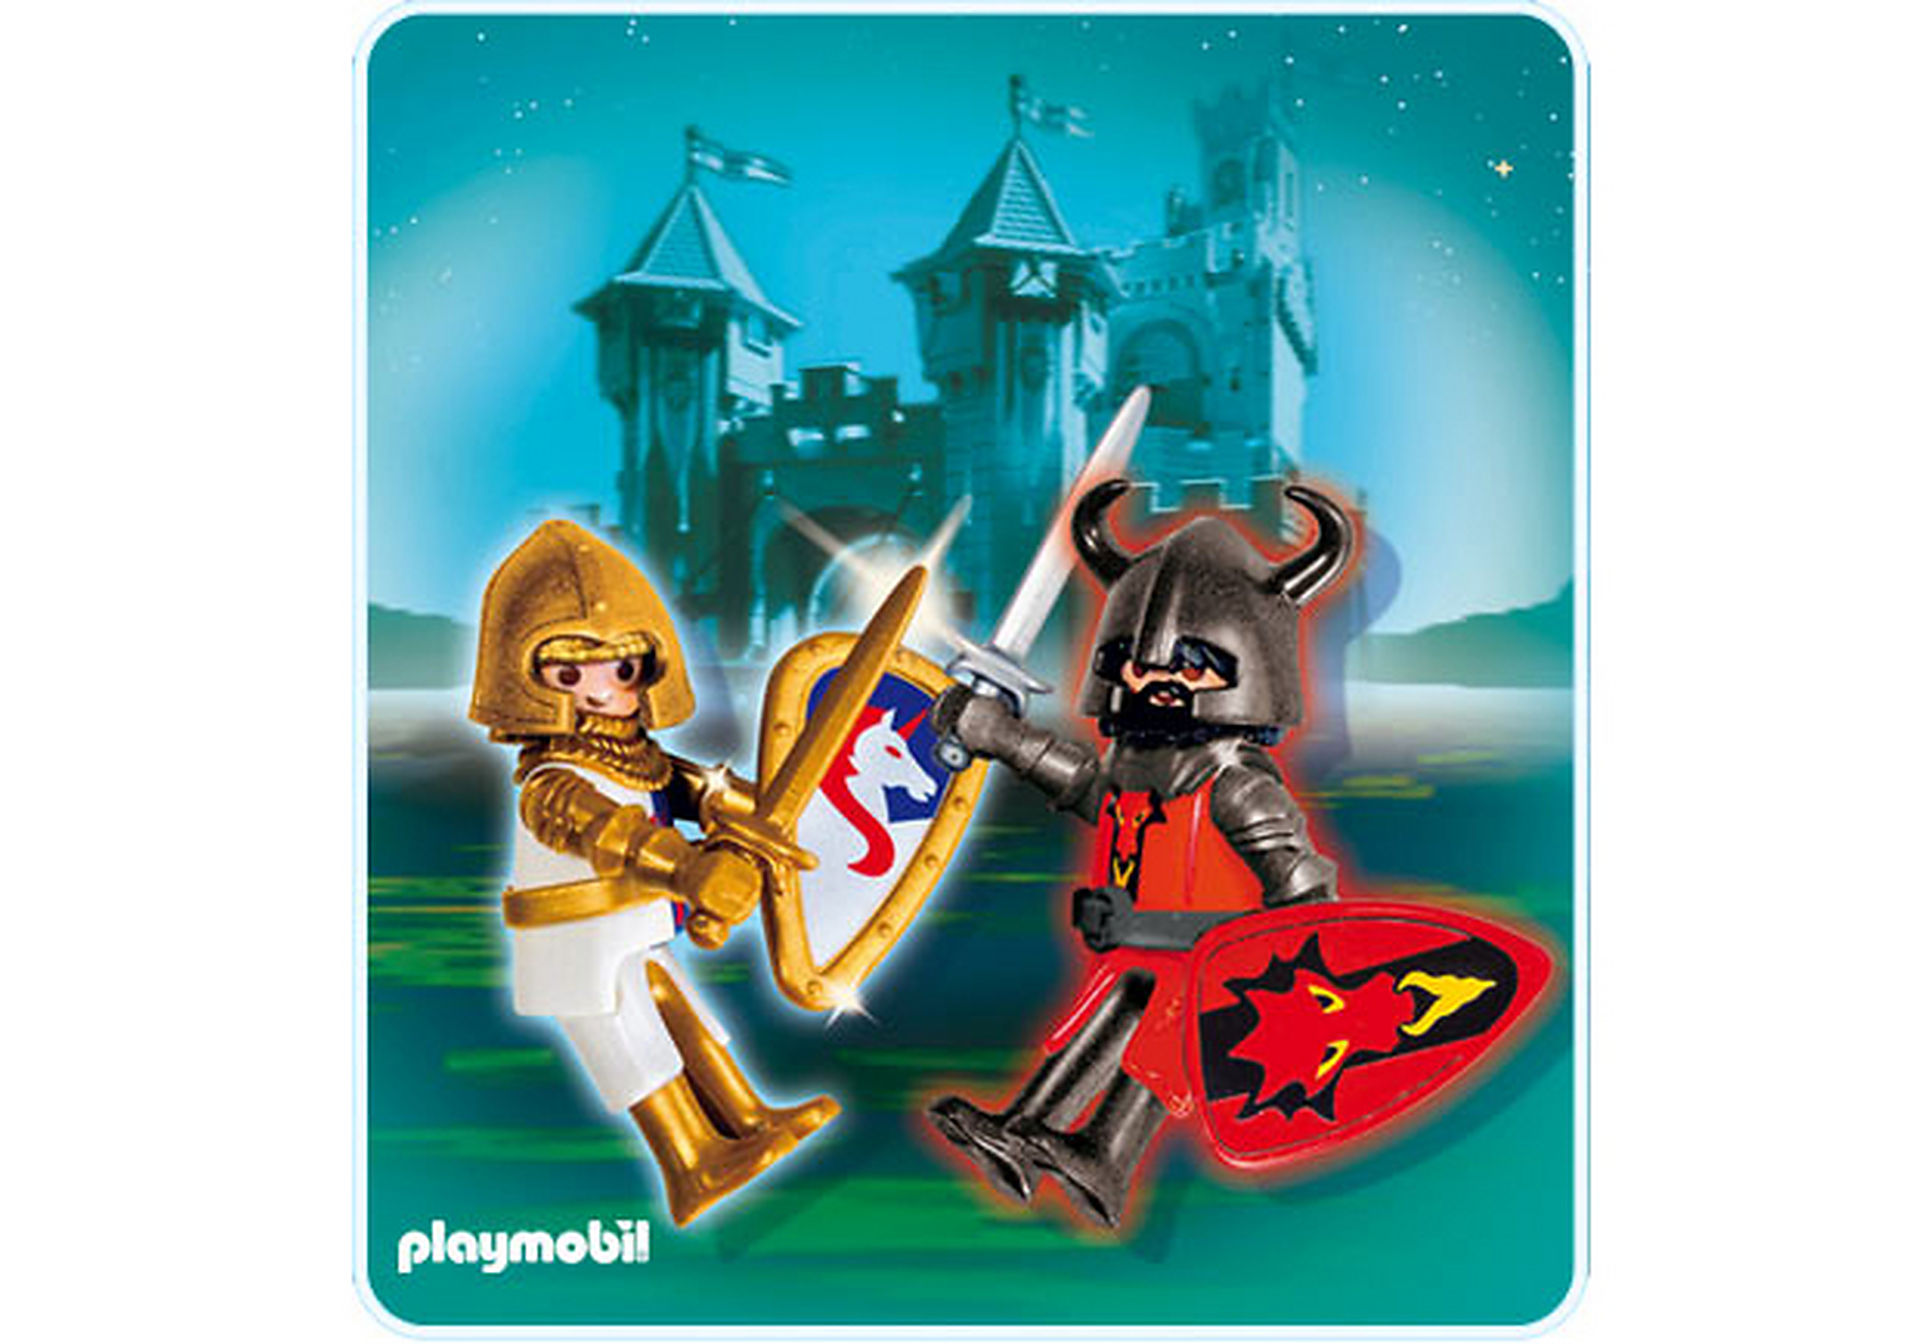 5815-A PLAYMOBIL Duo Chevalier Dragon rouge et Chevalier Licorne zoom image1